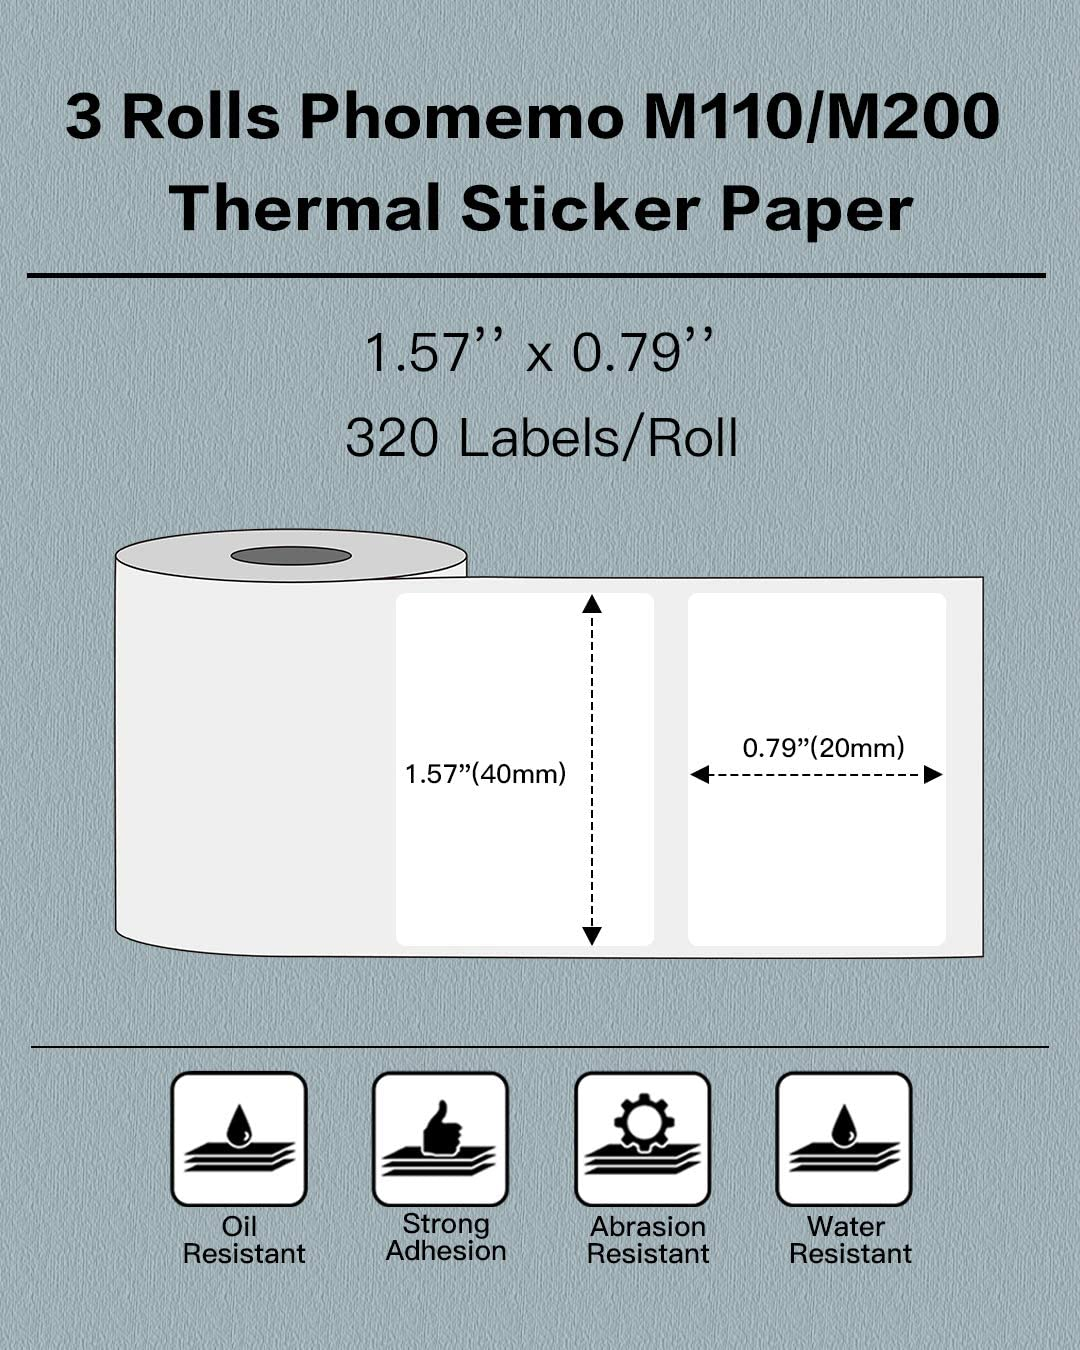 320 Labels//Roll 40x20mm Black on White - Multi-Purpose Square Self-Adhesive Label Phomemo 3 Rolls M110//M200 Thermal Paper 1.57 x 0.79